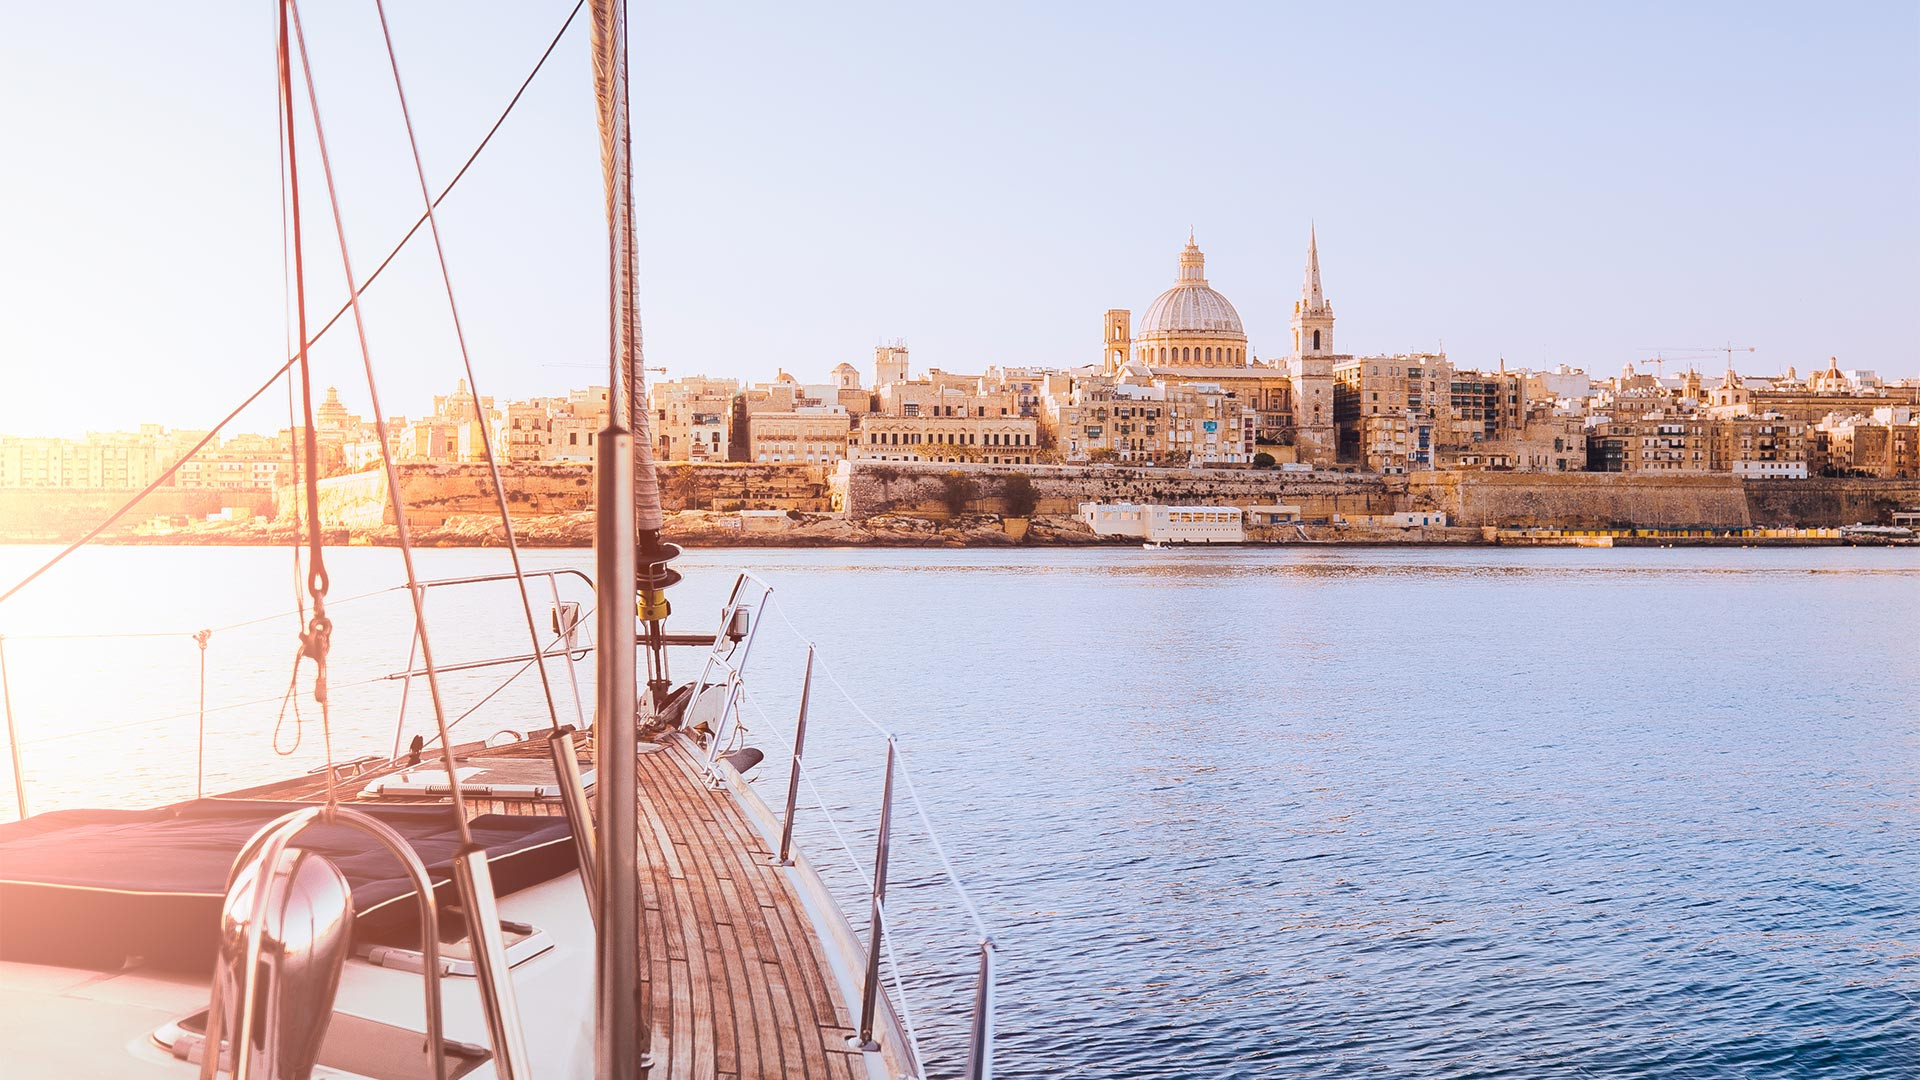 The harbour at Valletta, Malta